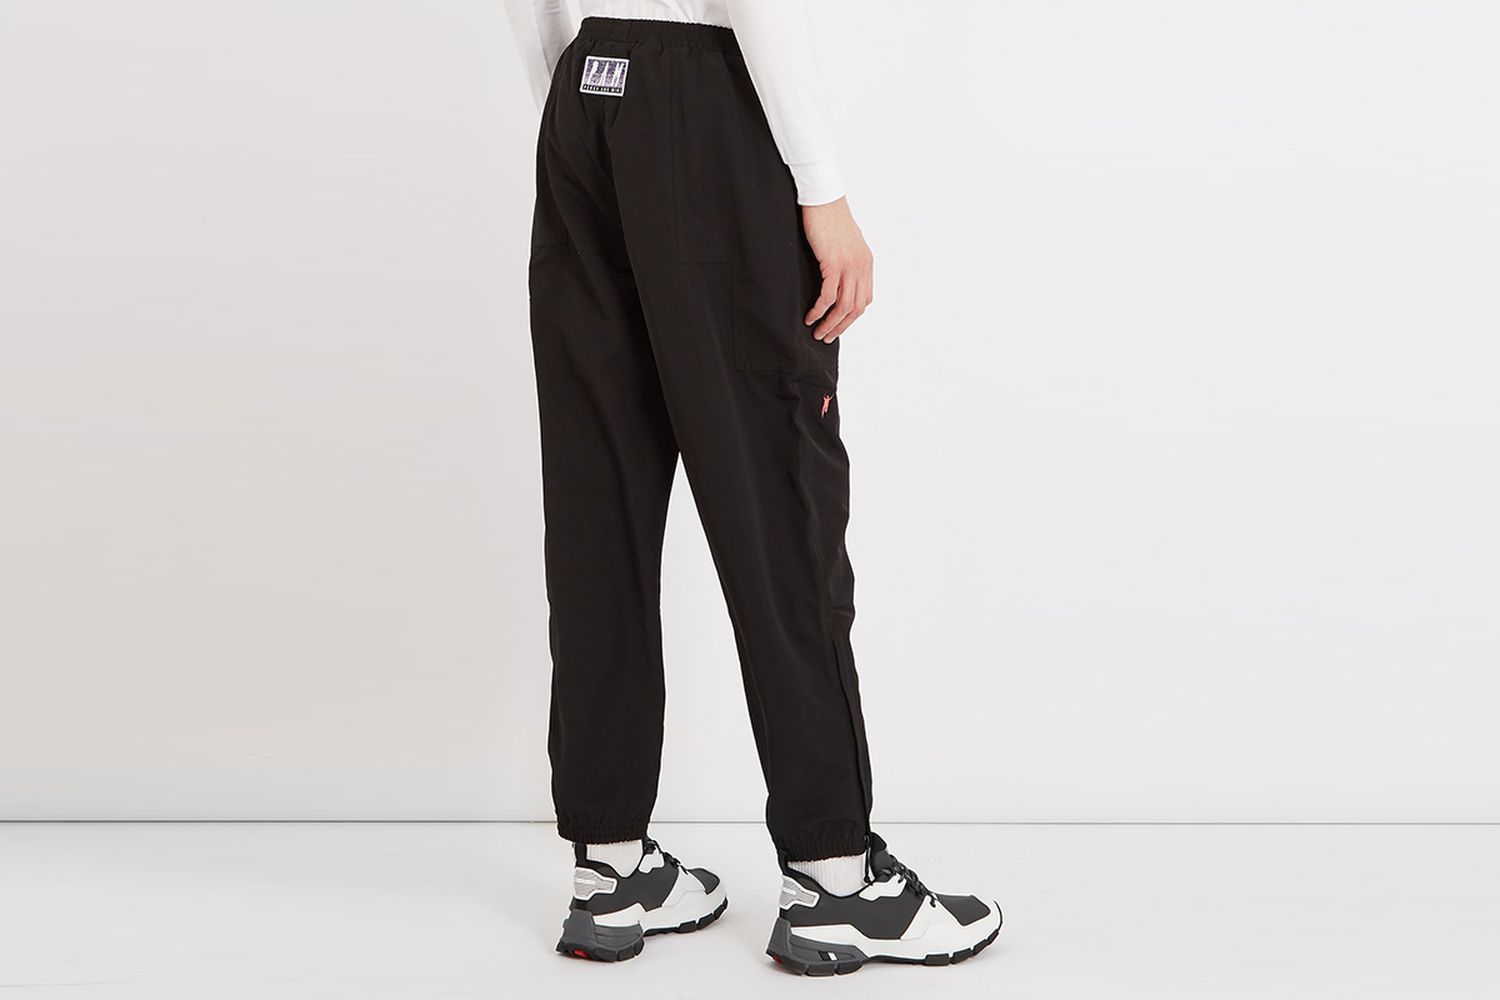 Embroidered Track pants